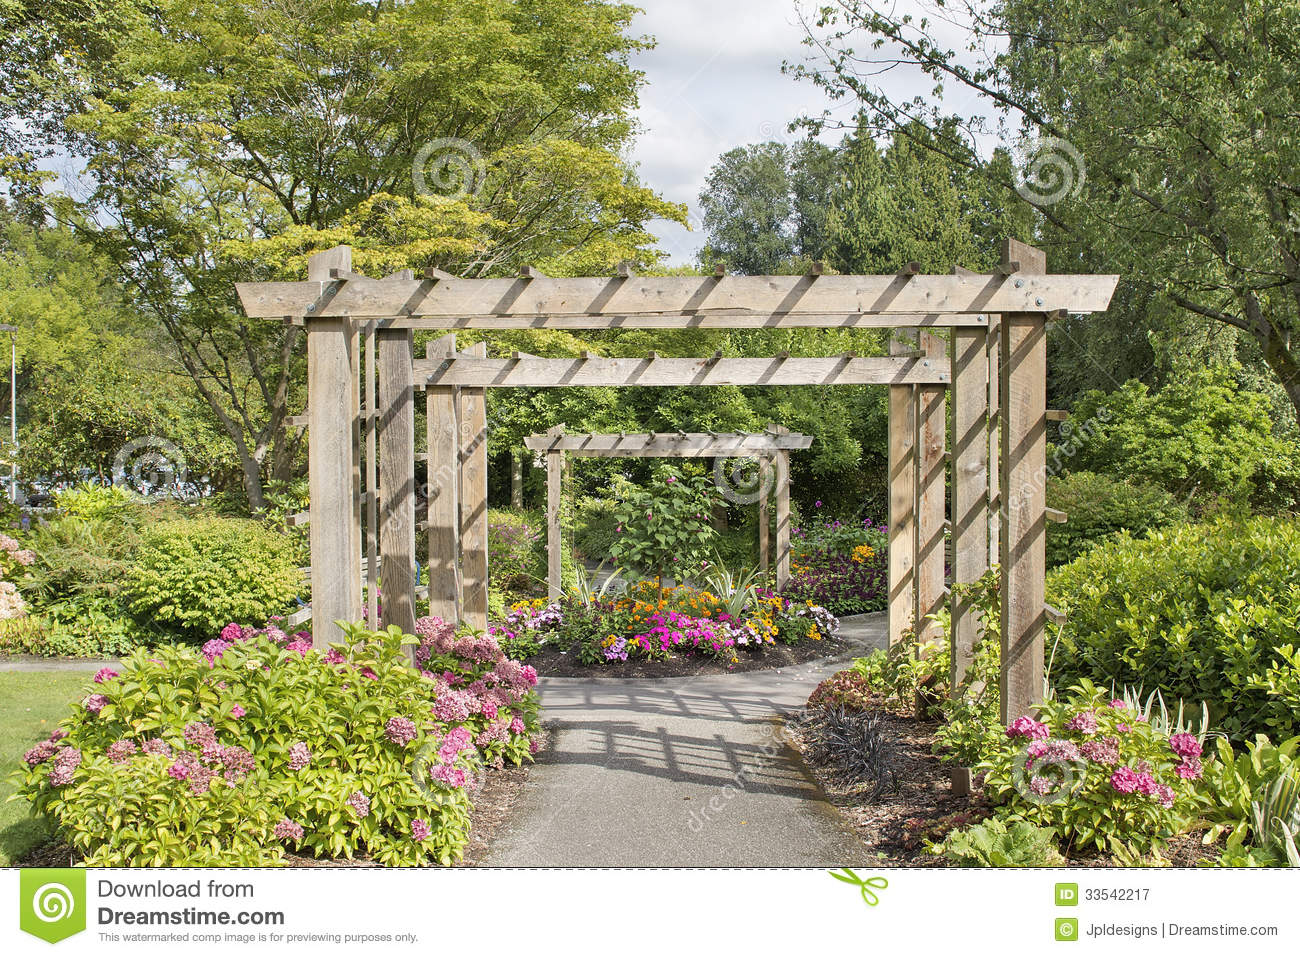 Wood Arbor Over Garden Path with Plants Trees and Flowers Blooming in ...